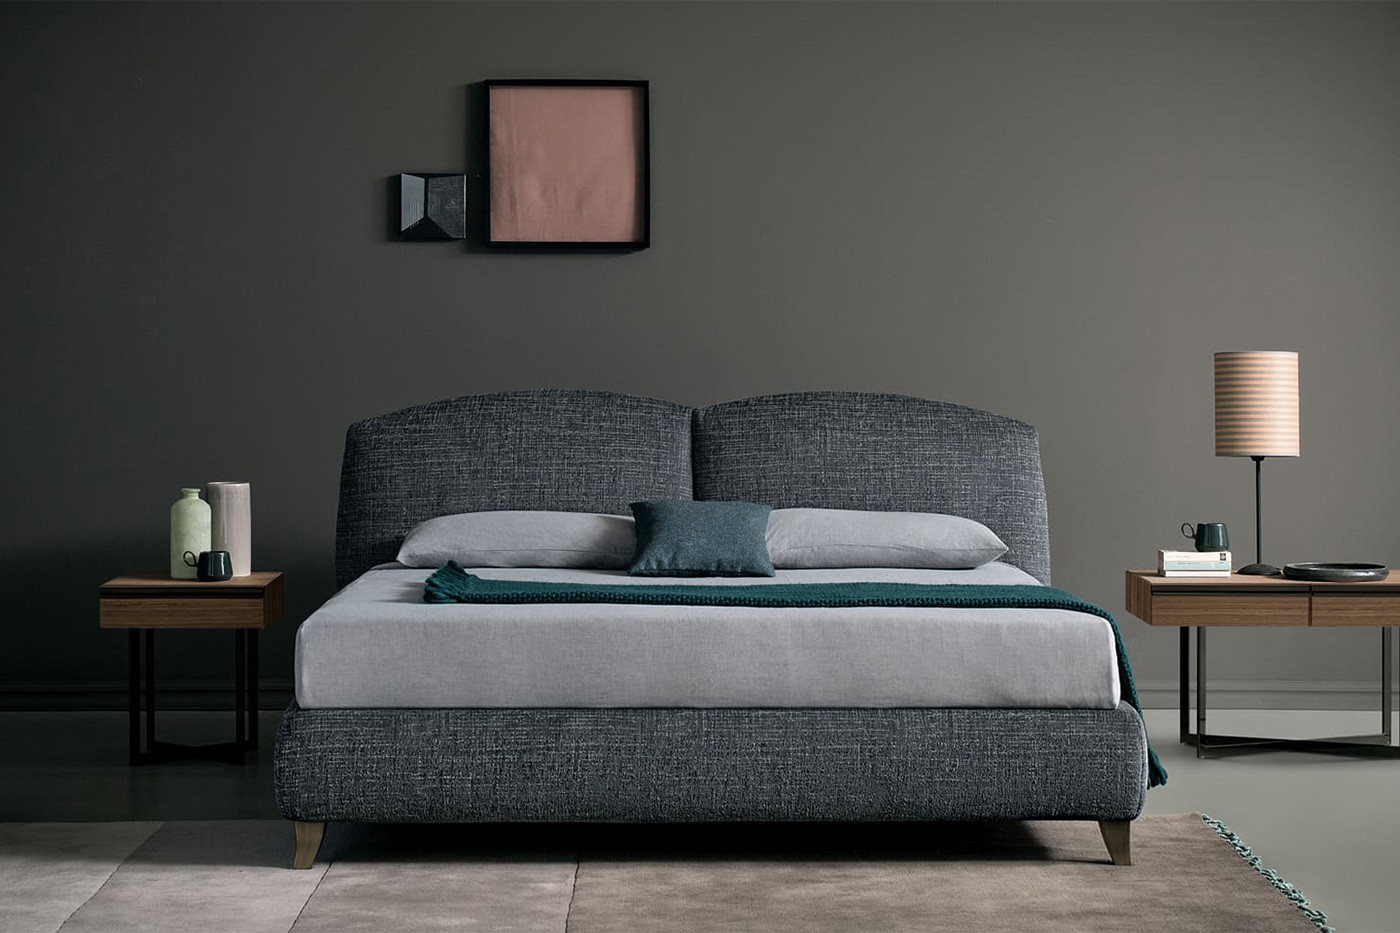 Upholstered king size bed with double cushion headboard and mid-century saber legs